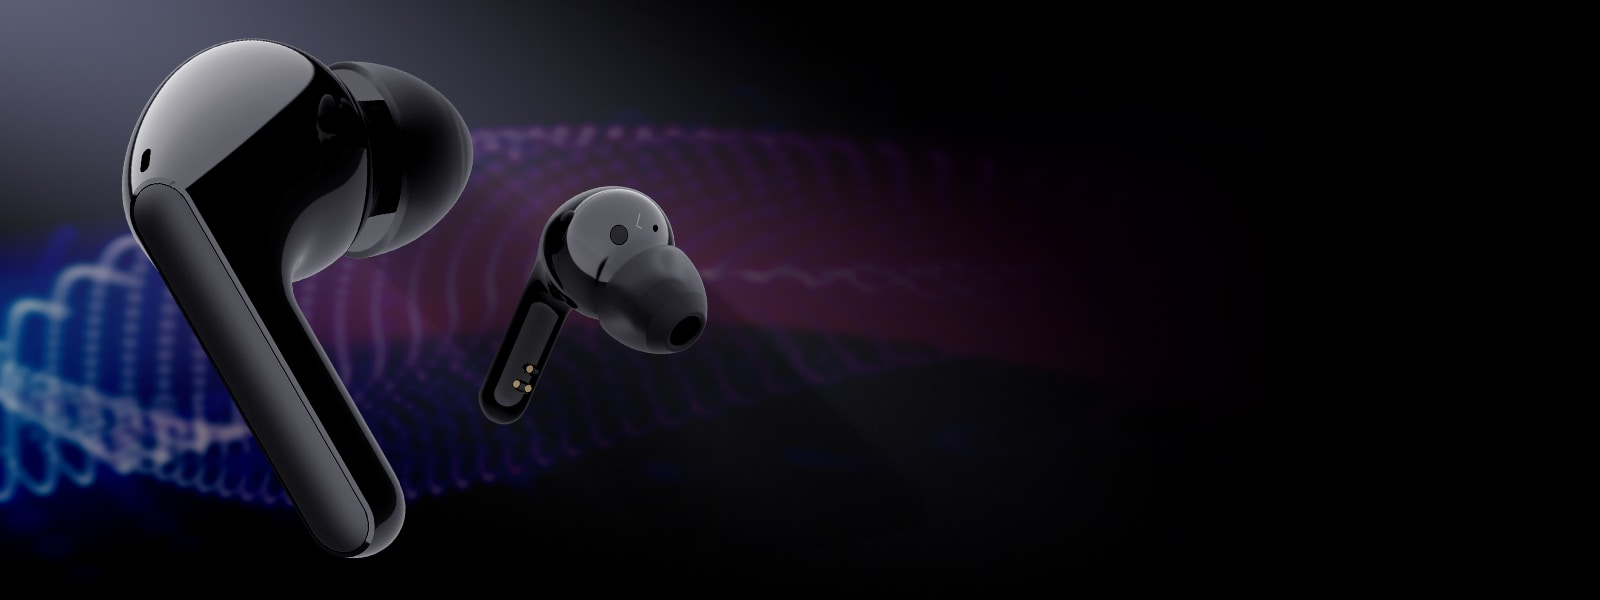 Introducing our cleanest audio ever LG TONE earbuds on black backgroun d with graphics